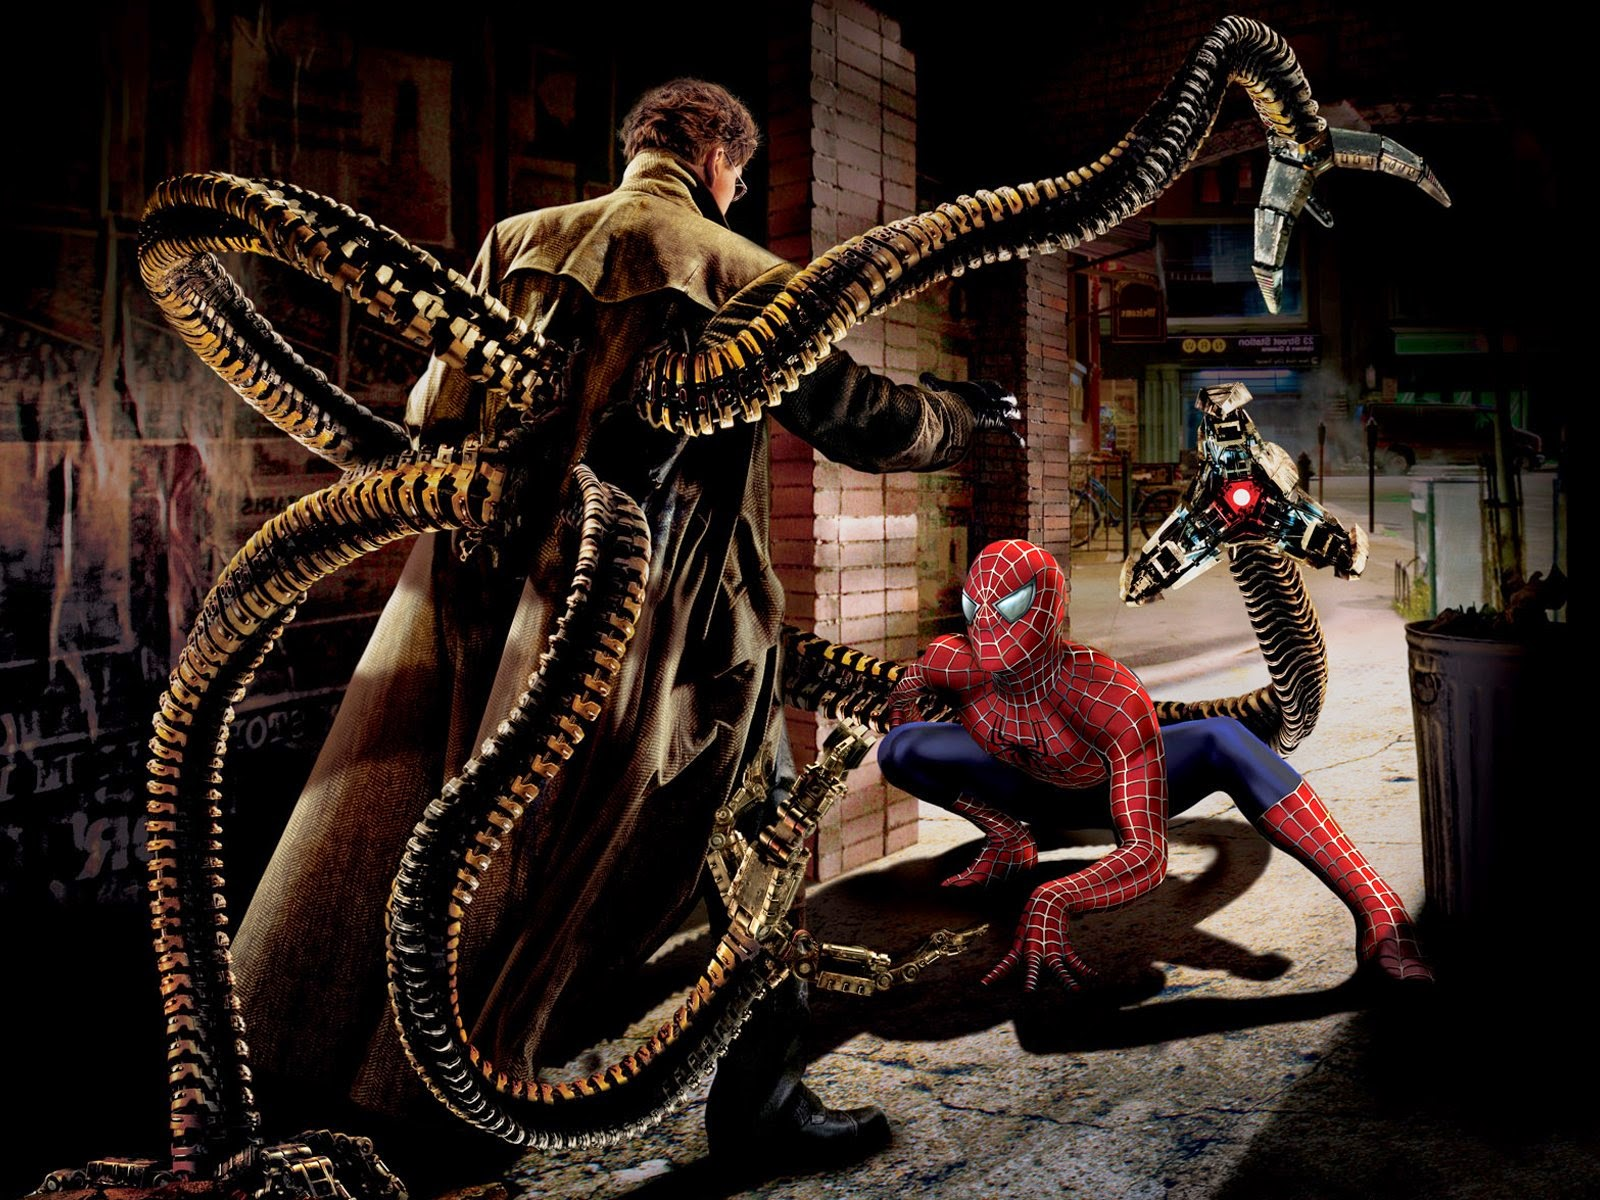 Spider-Man 2 Doc Ock vs Spidey